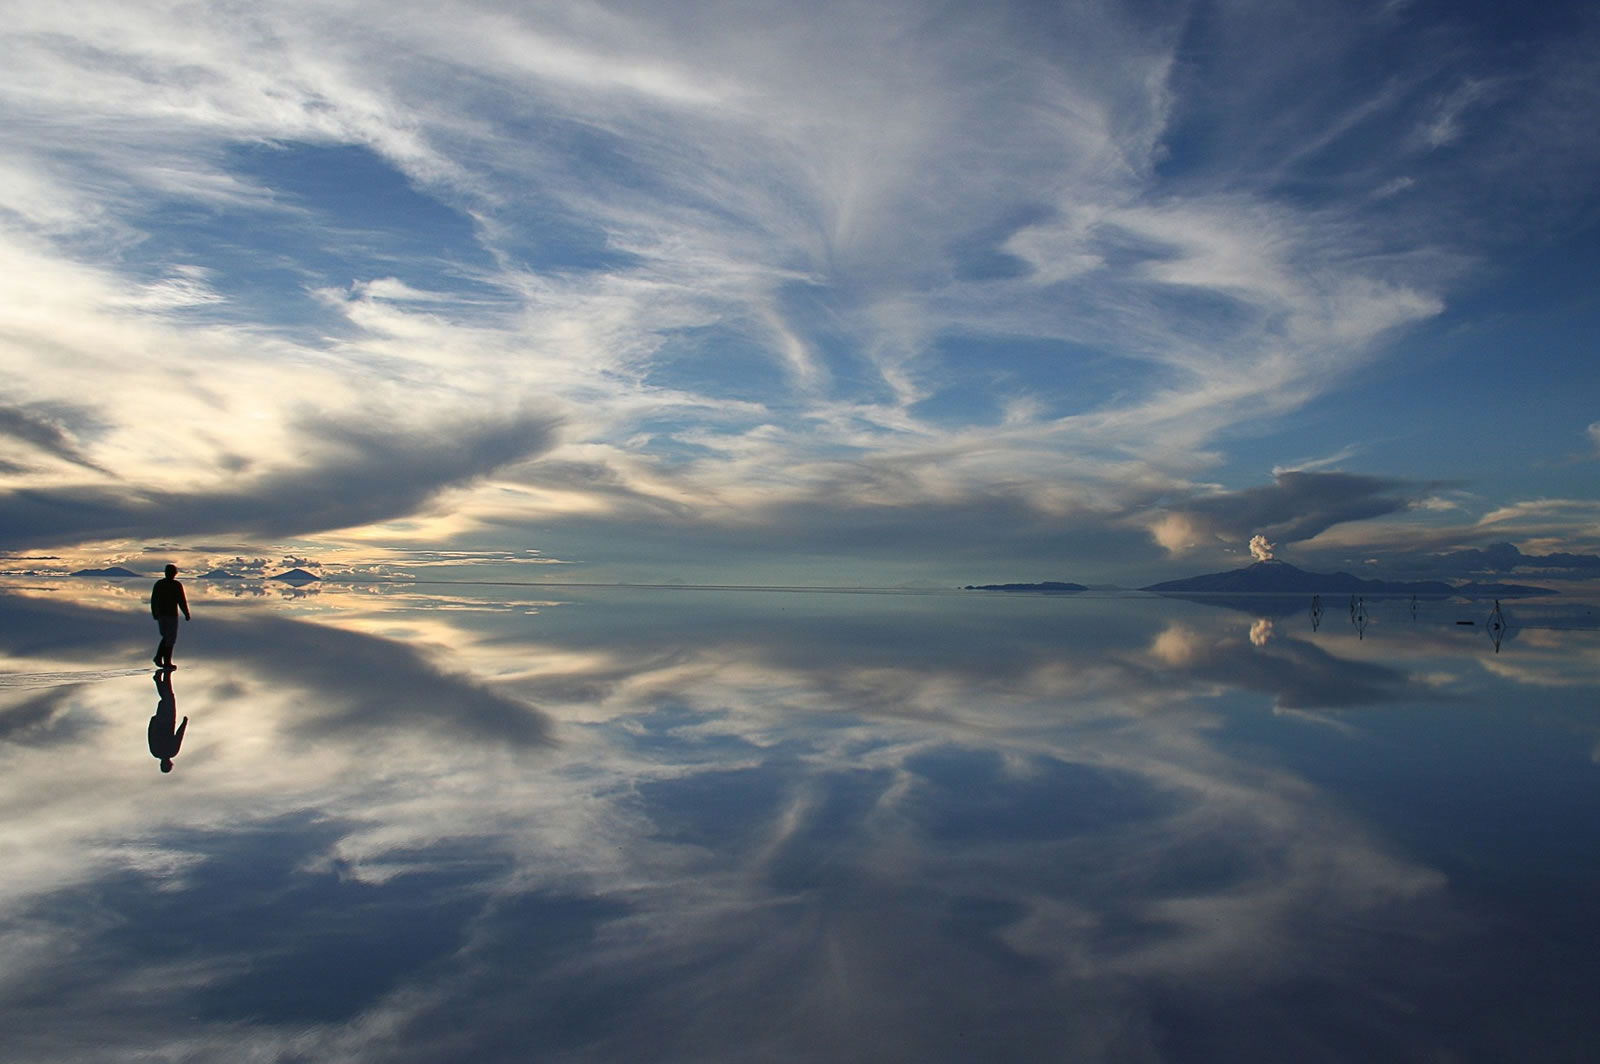 The best time to visit the Uyuni Salt Flat in Bolivia